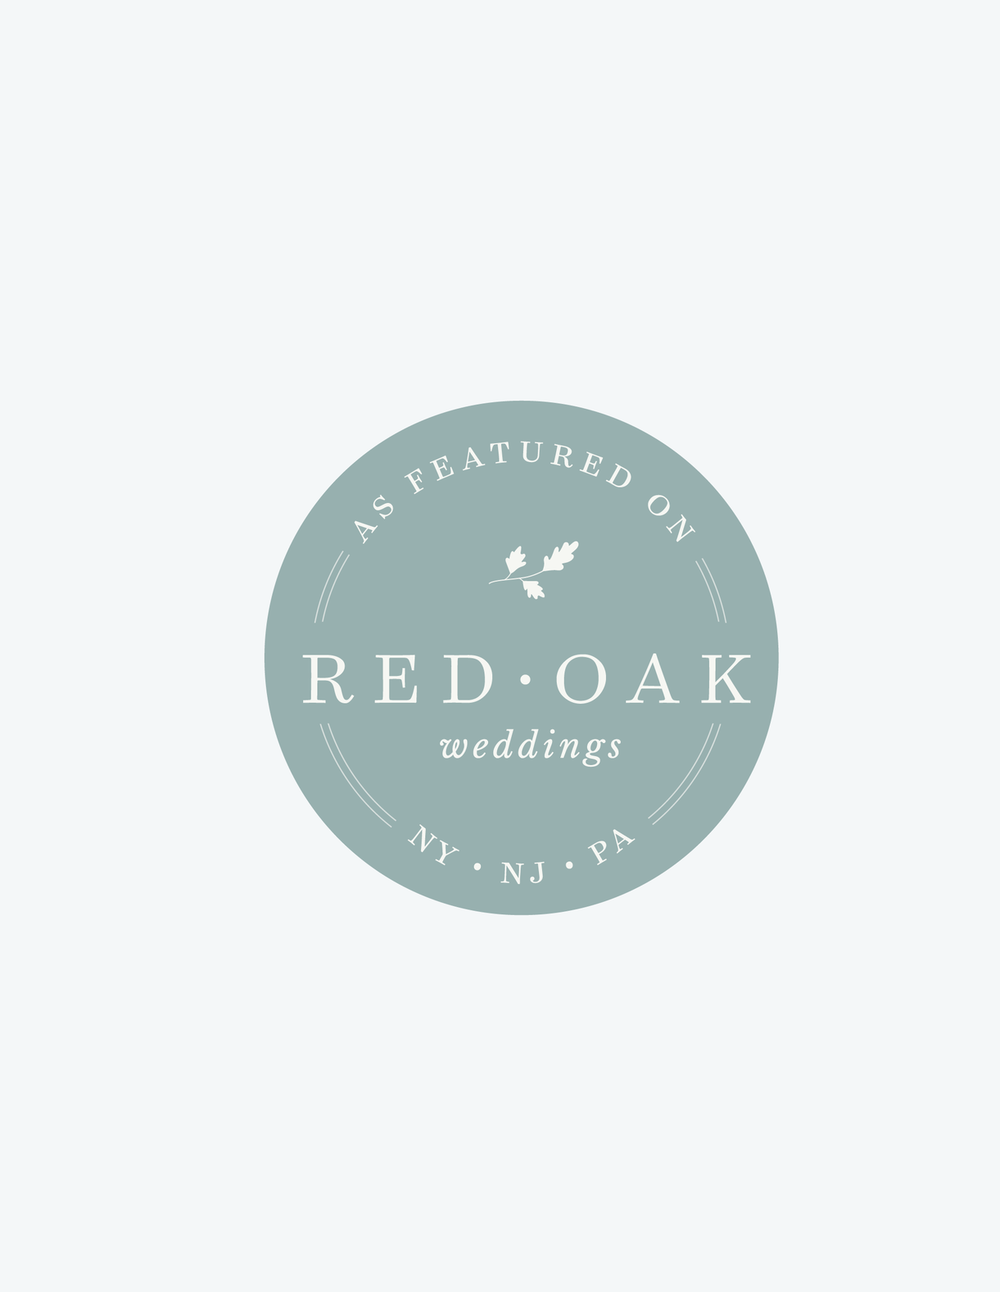 Red+Oak+Weddings-+Branding+-+Meg+Summerfield+Studio+-+Photo+Cred-+Cinnamon+Wolfe+&+Laura+Lee-3-1.png